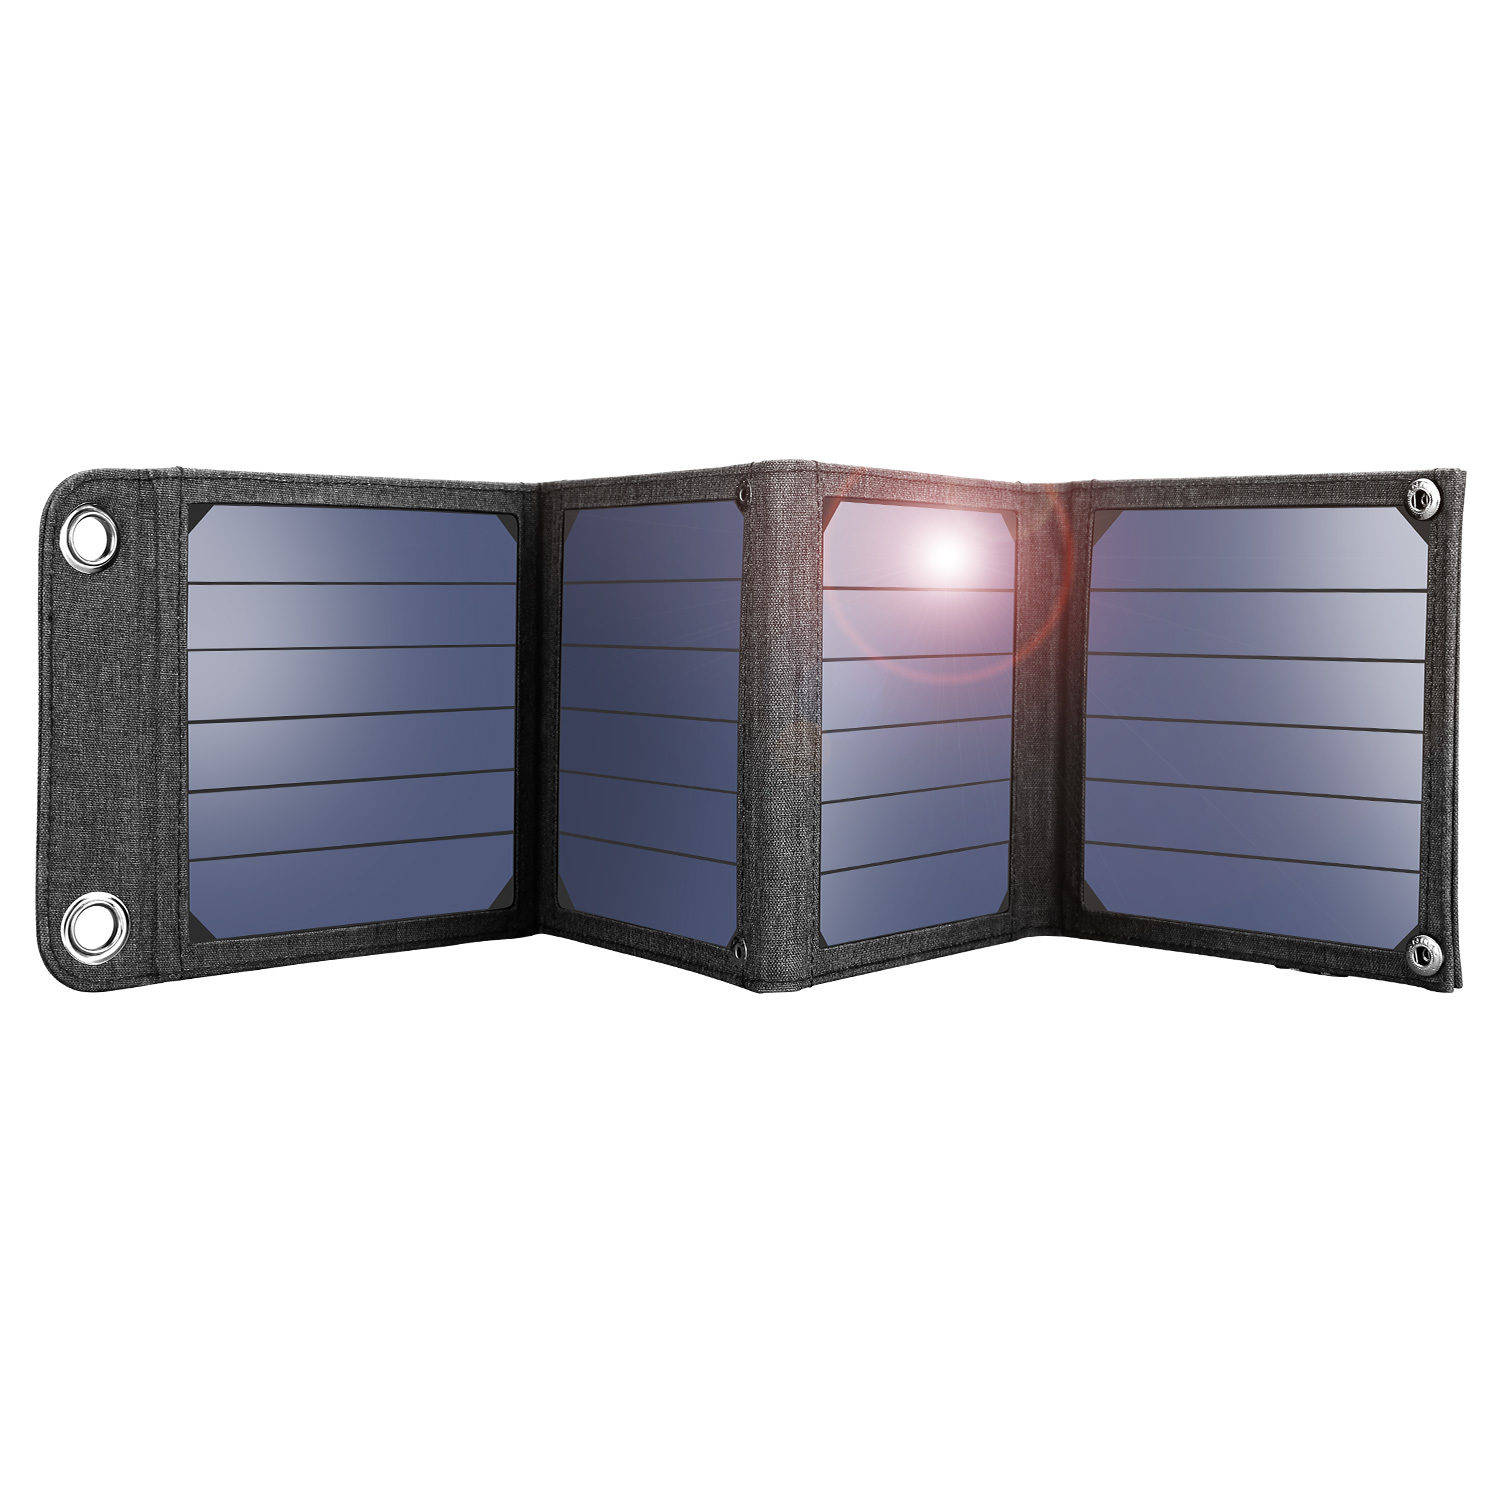 Suaoki 14W Solar Charger with Portable SunPower Solar Panels for Smartphones and Other 5V USB Devices